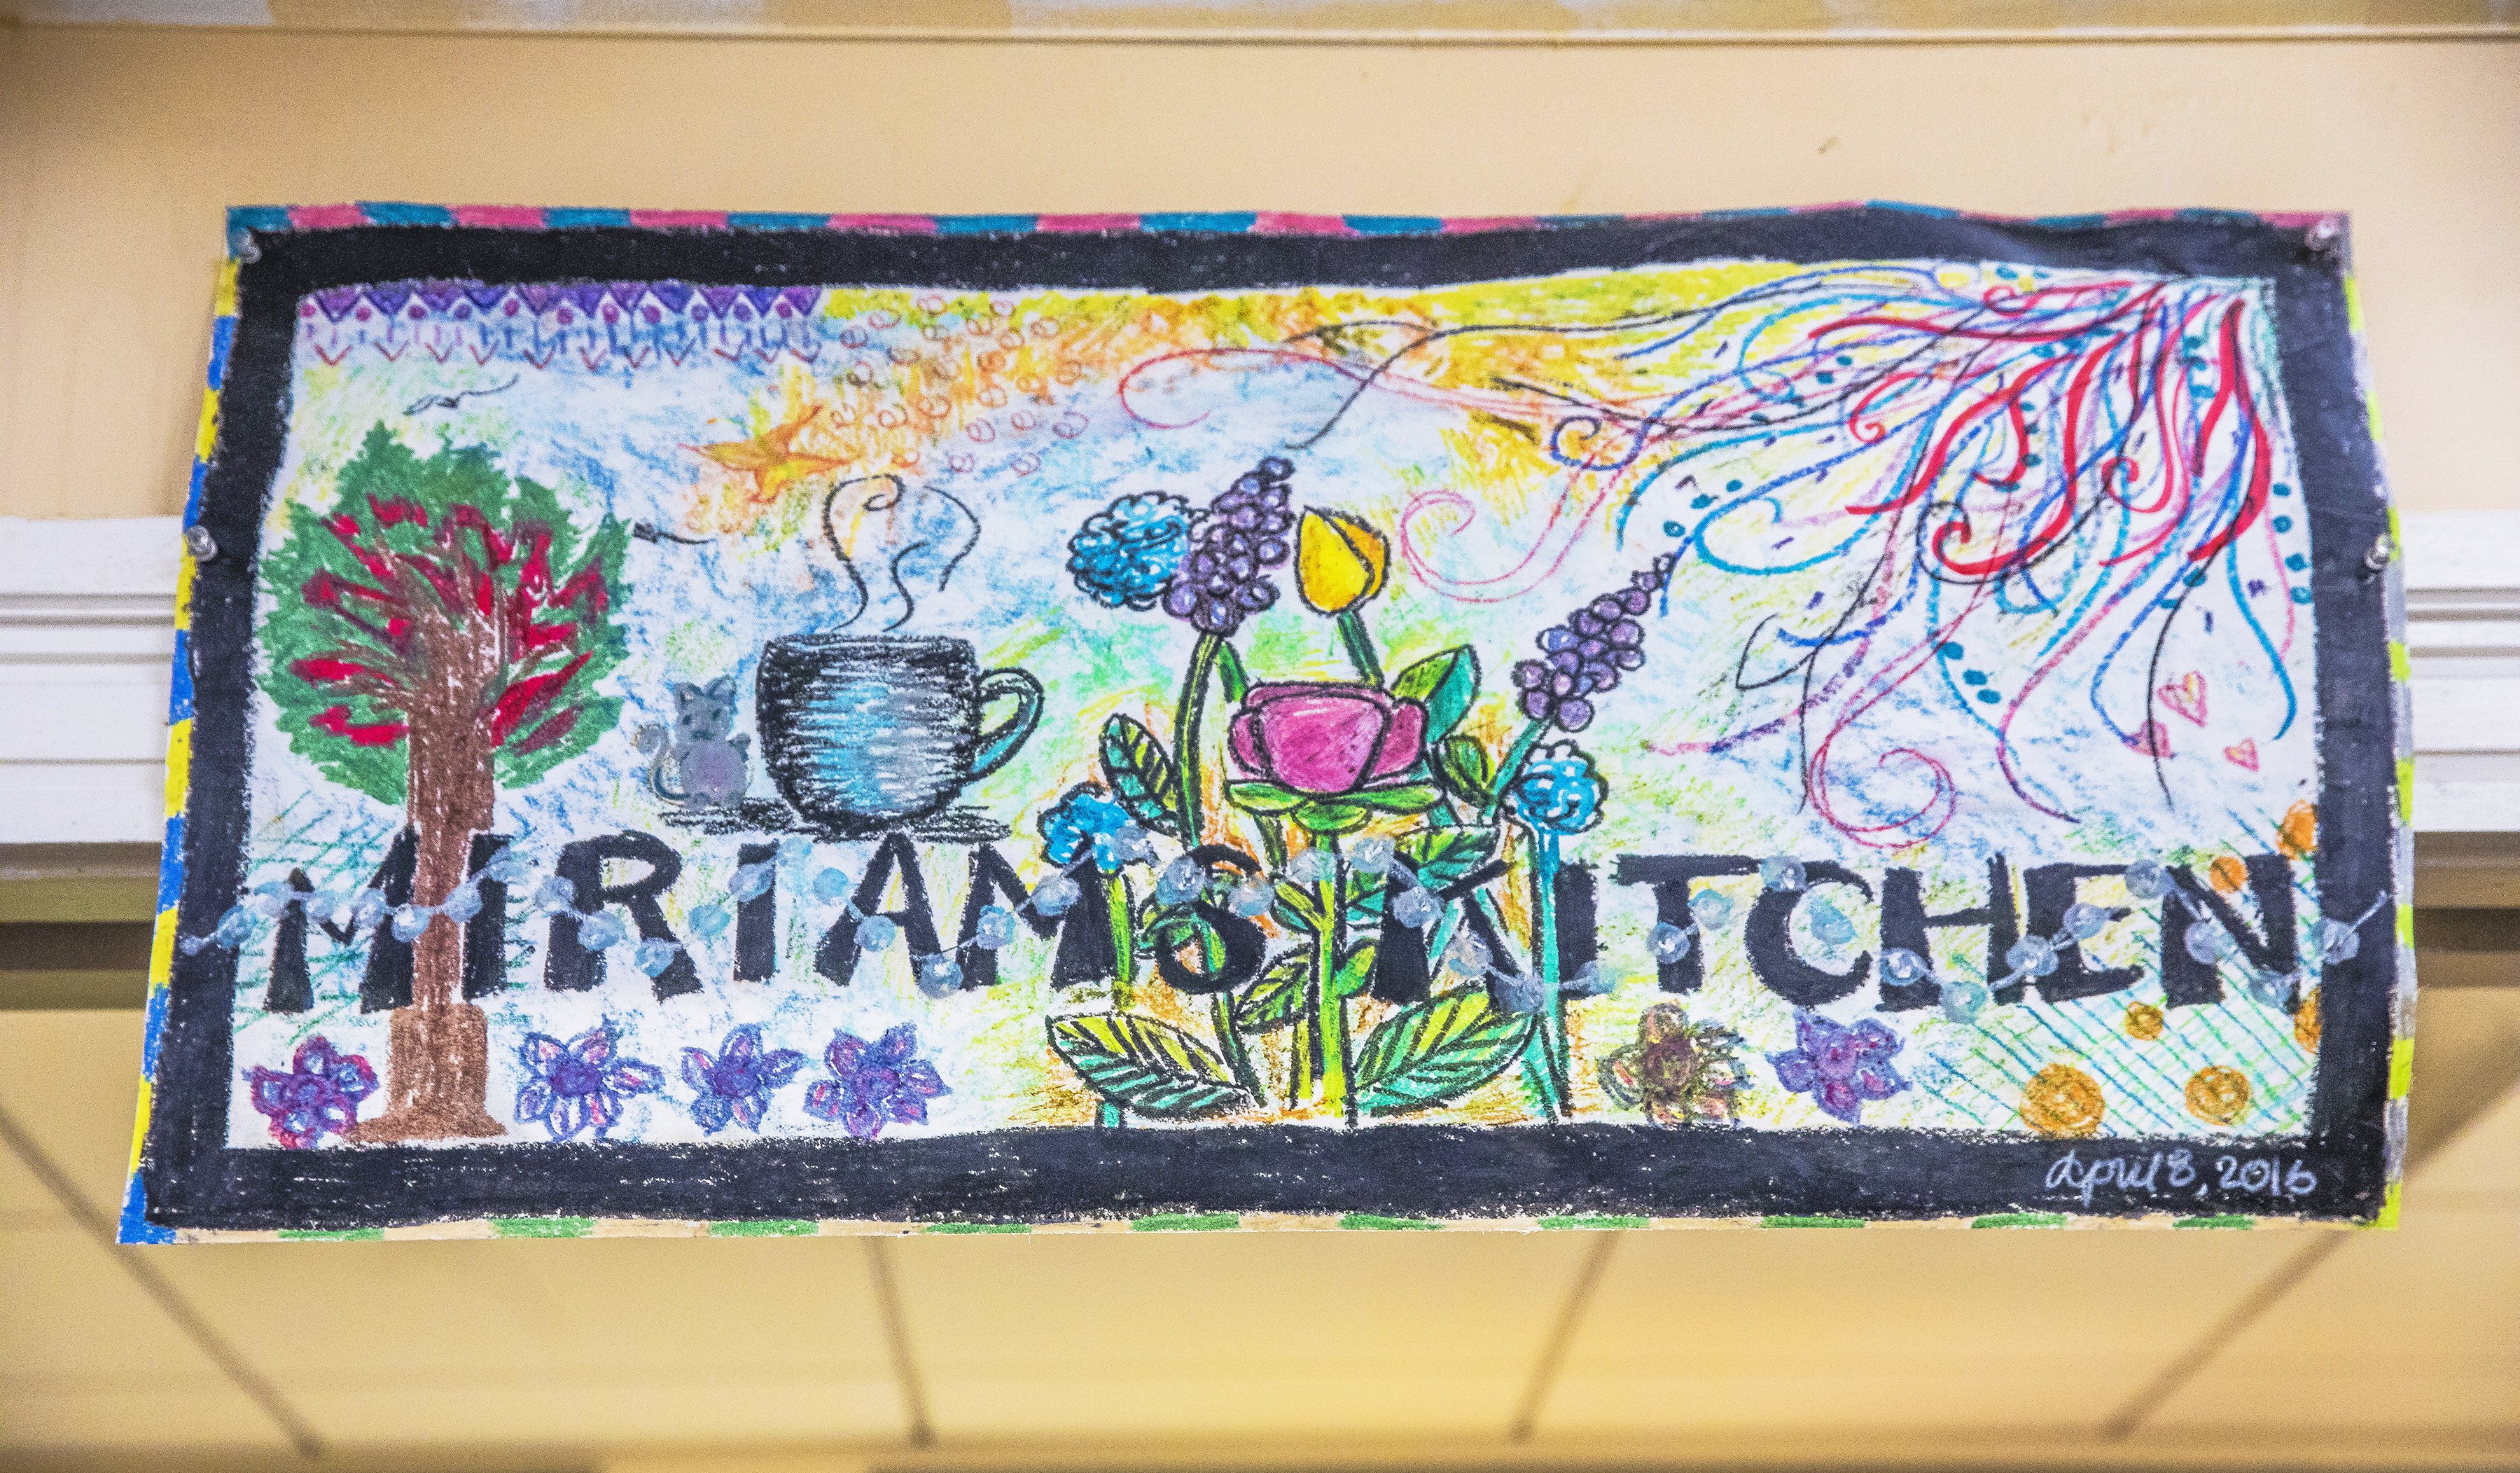 artwork with the name miriam's kitchen included